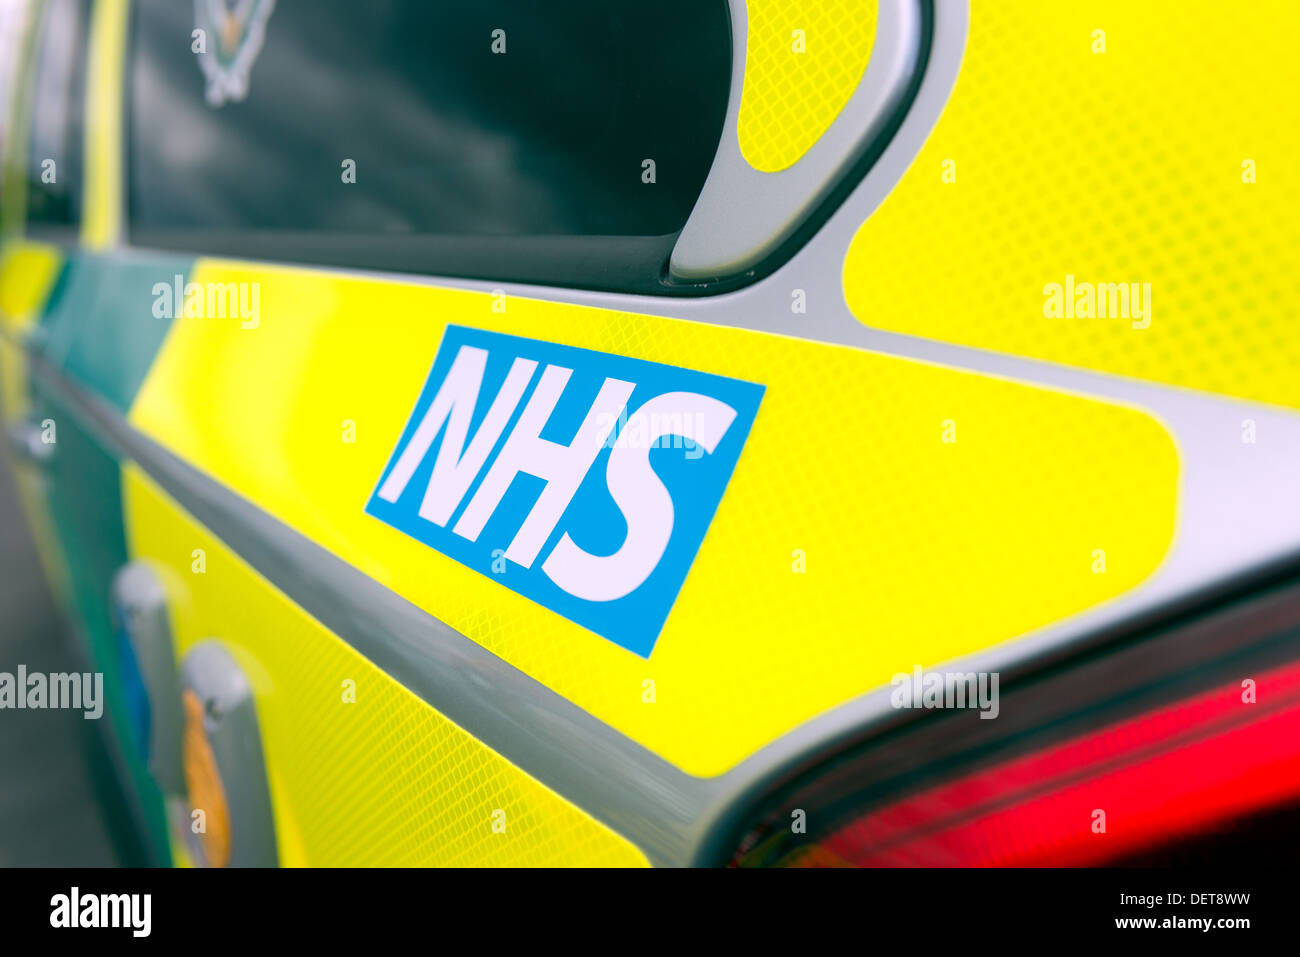 The detail of the NHS logo on a paramedic's ambulance car - Stock Image